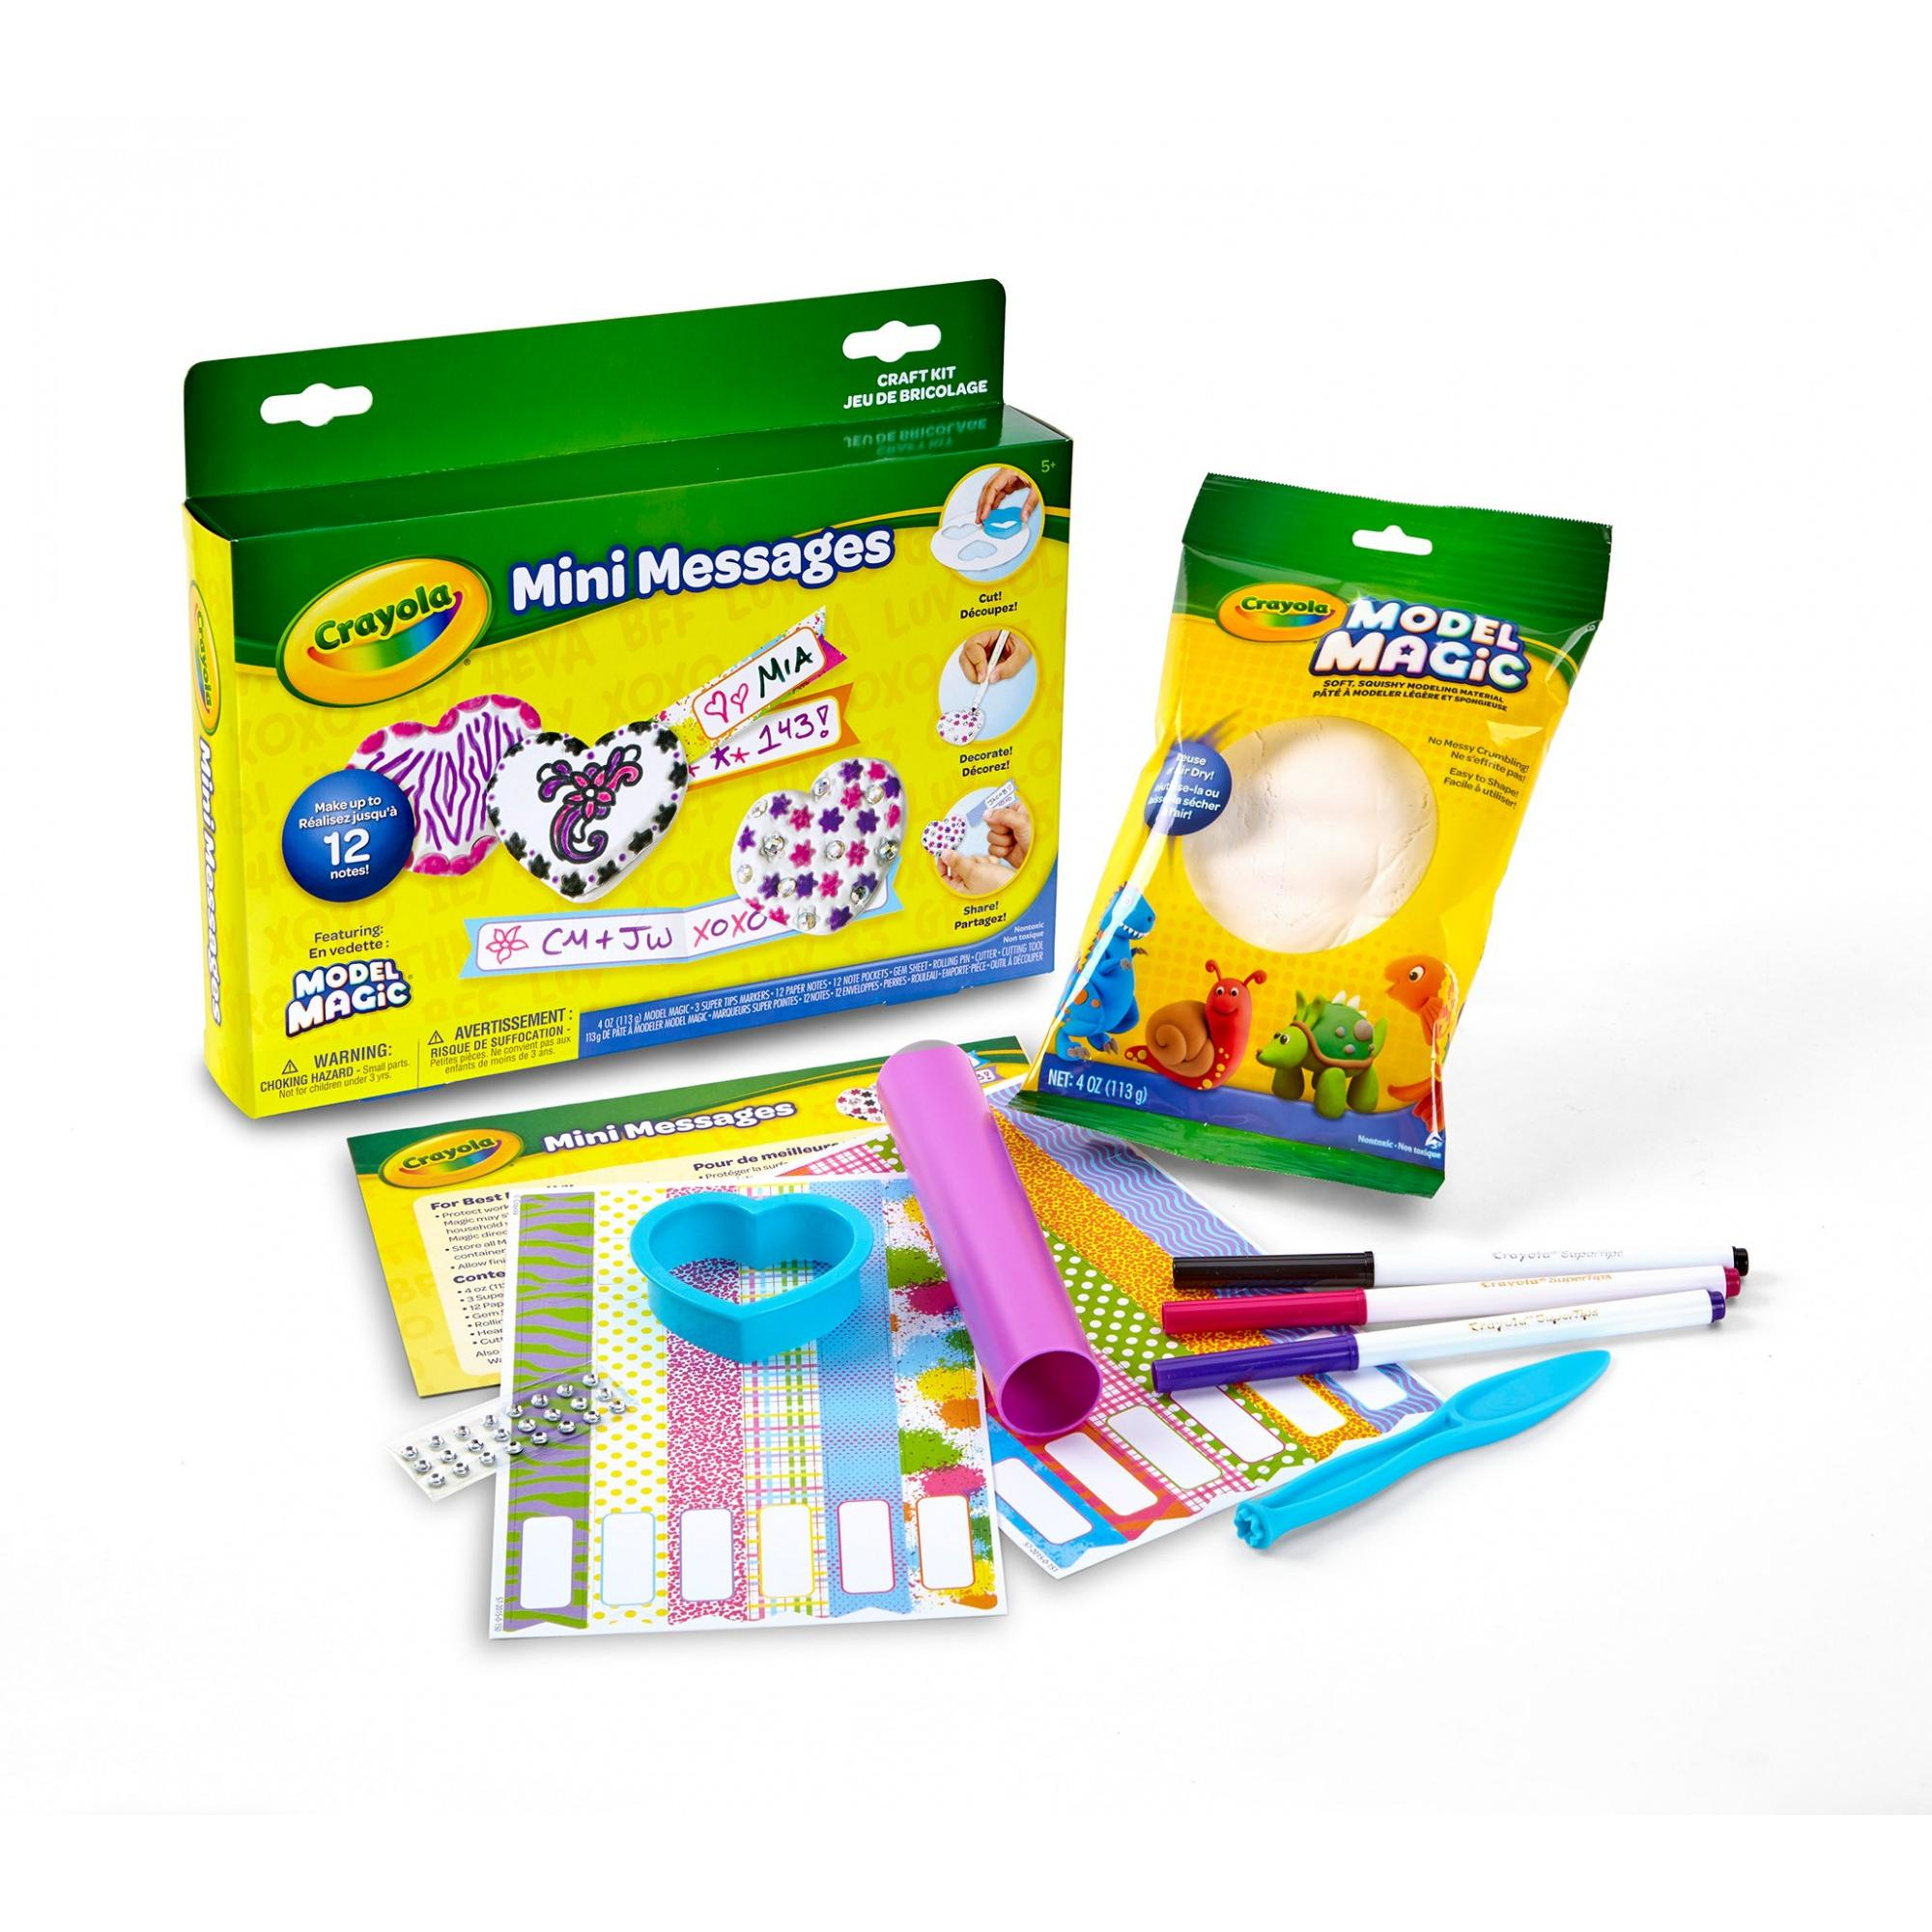 Crayola Model Magic Mini Messages, Valentines Day Craft Kit, Gifts